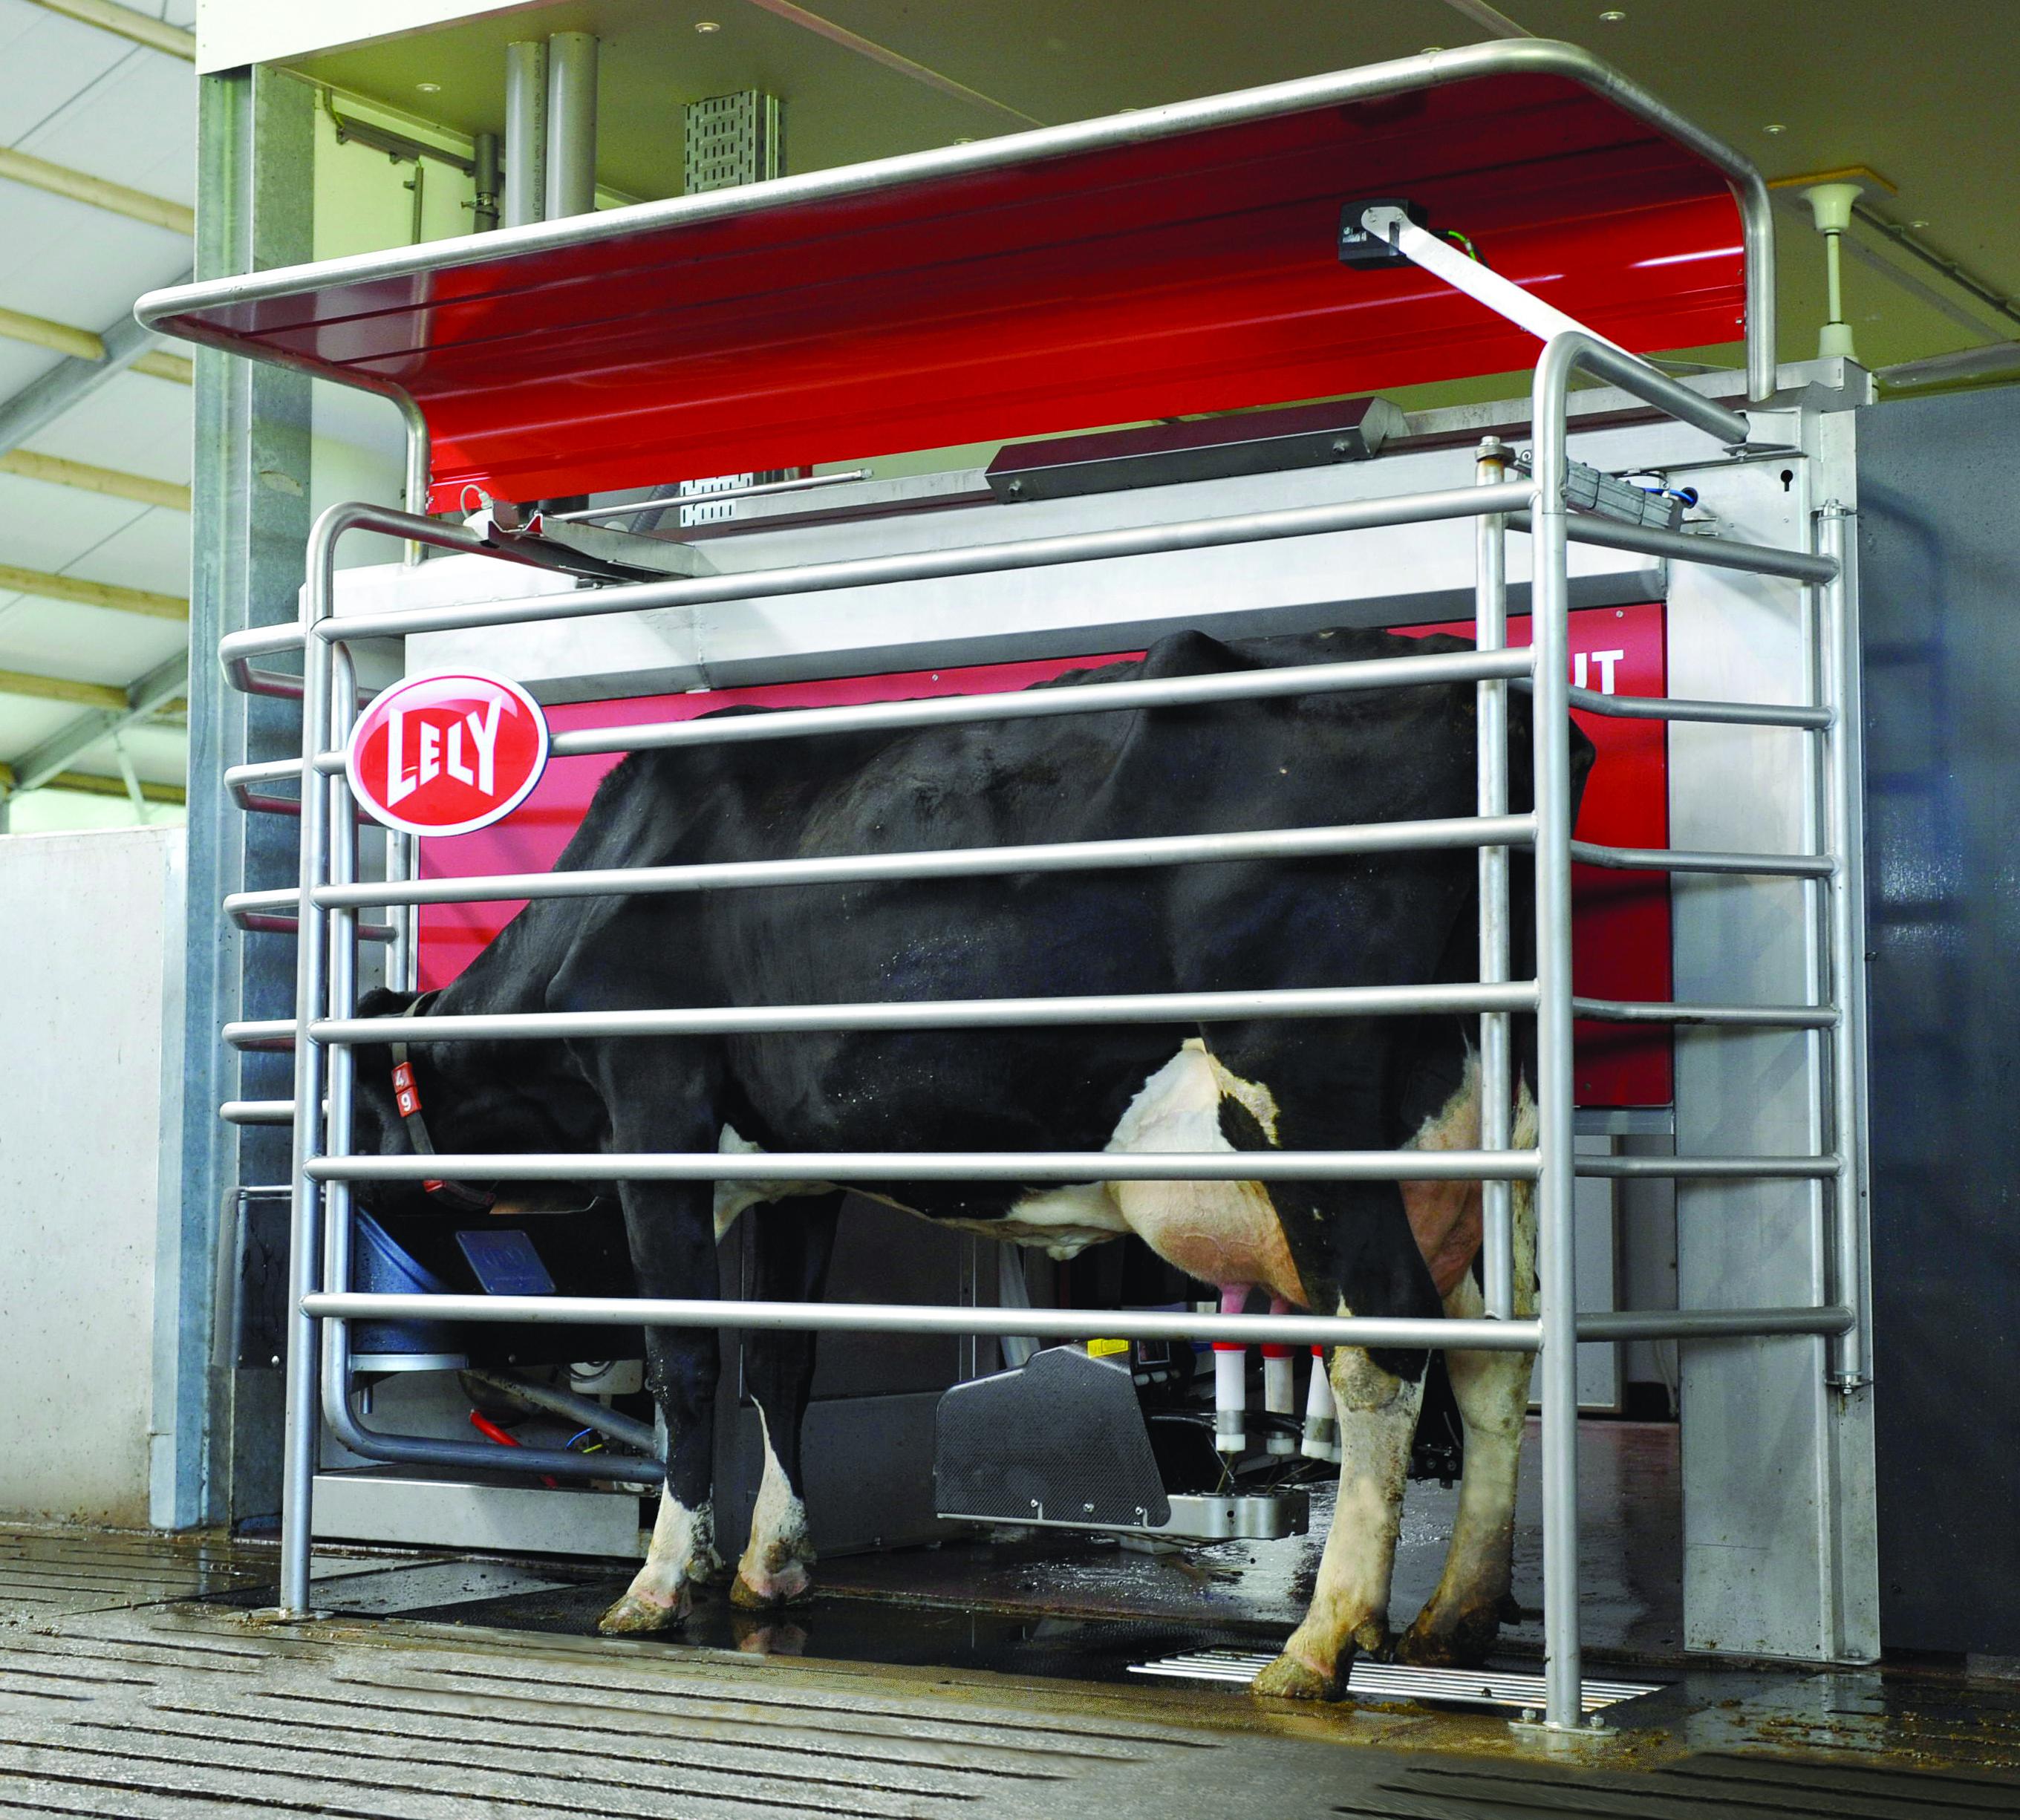 Milking robots can give you more insights that will allow you to breed more efficiently